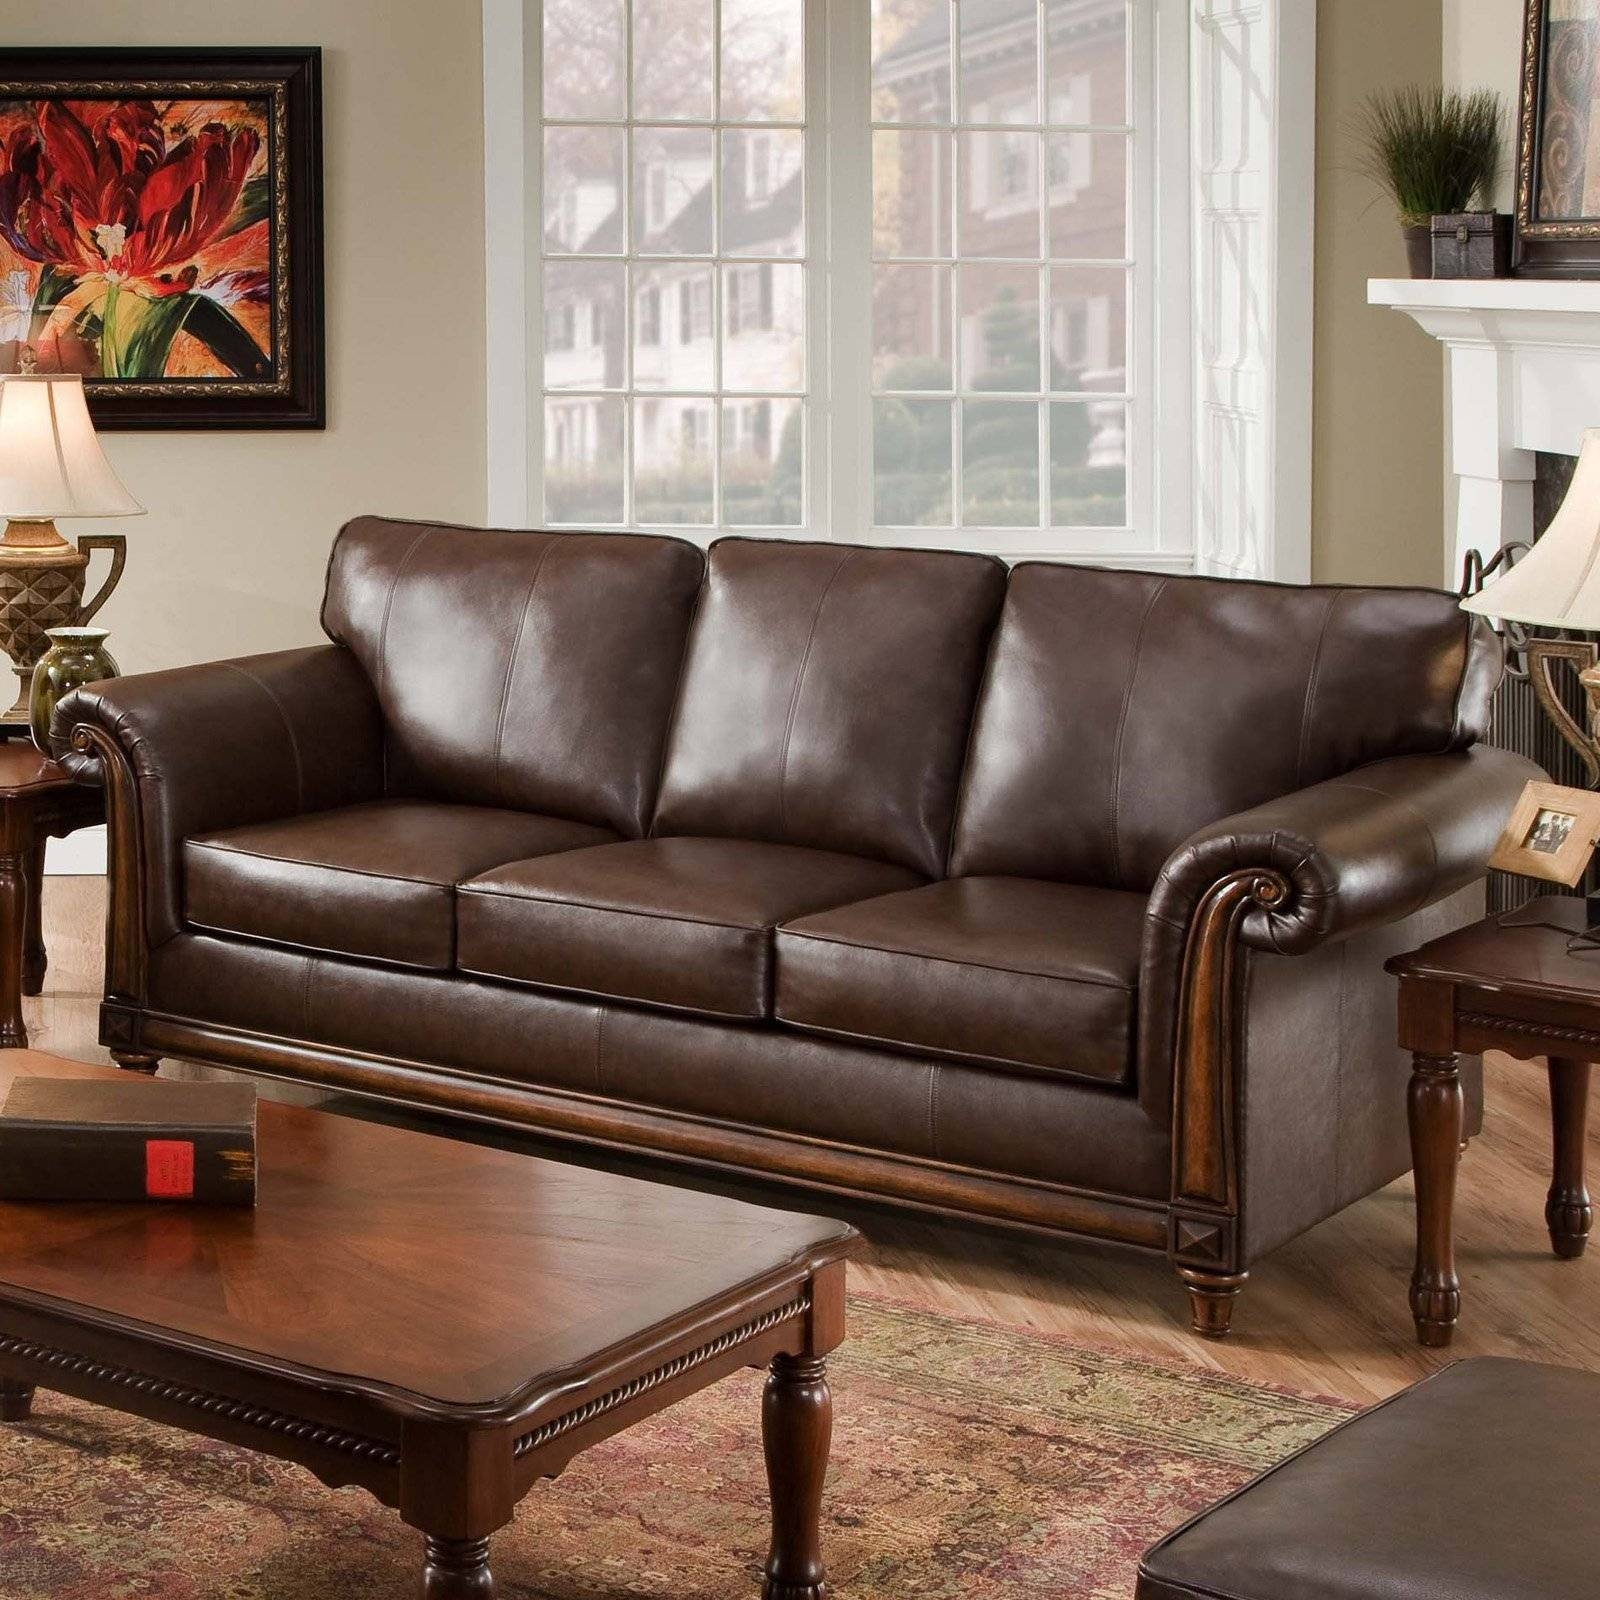 Simmons San Diego Coffee Leather Sofa | Hayneedle inside Simmons Leather Sofas (Image 11 of 15)